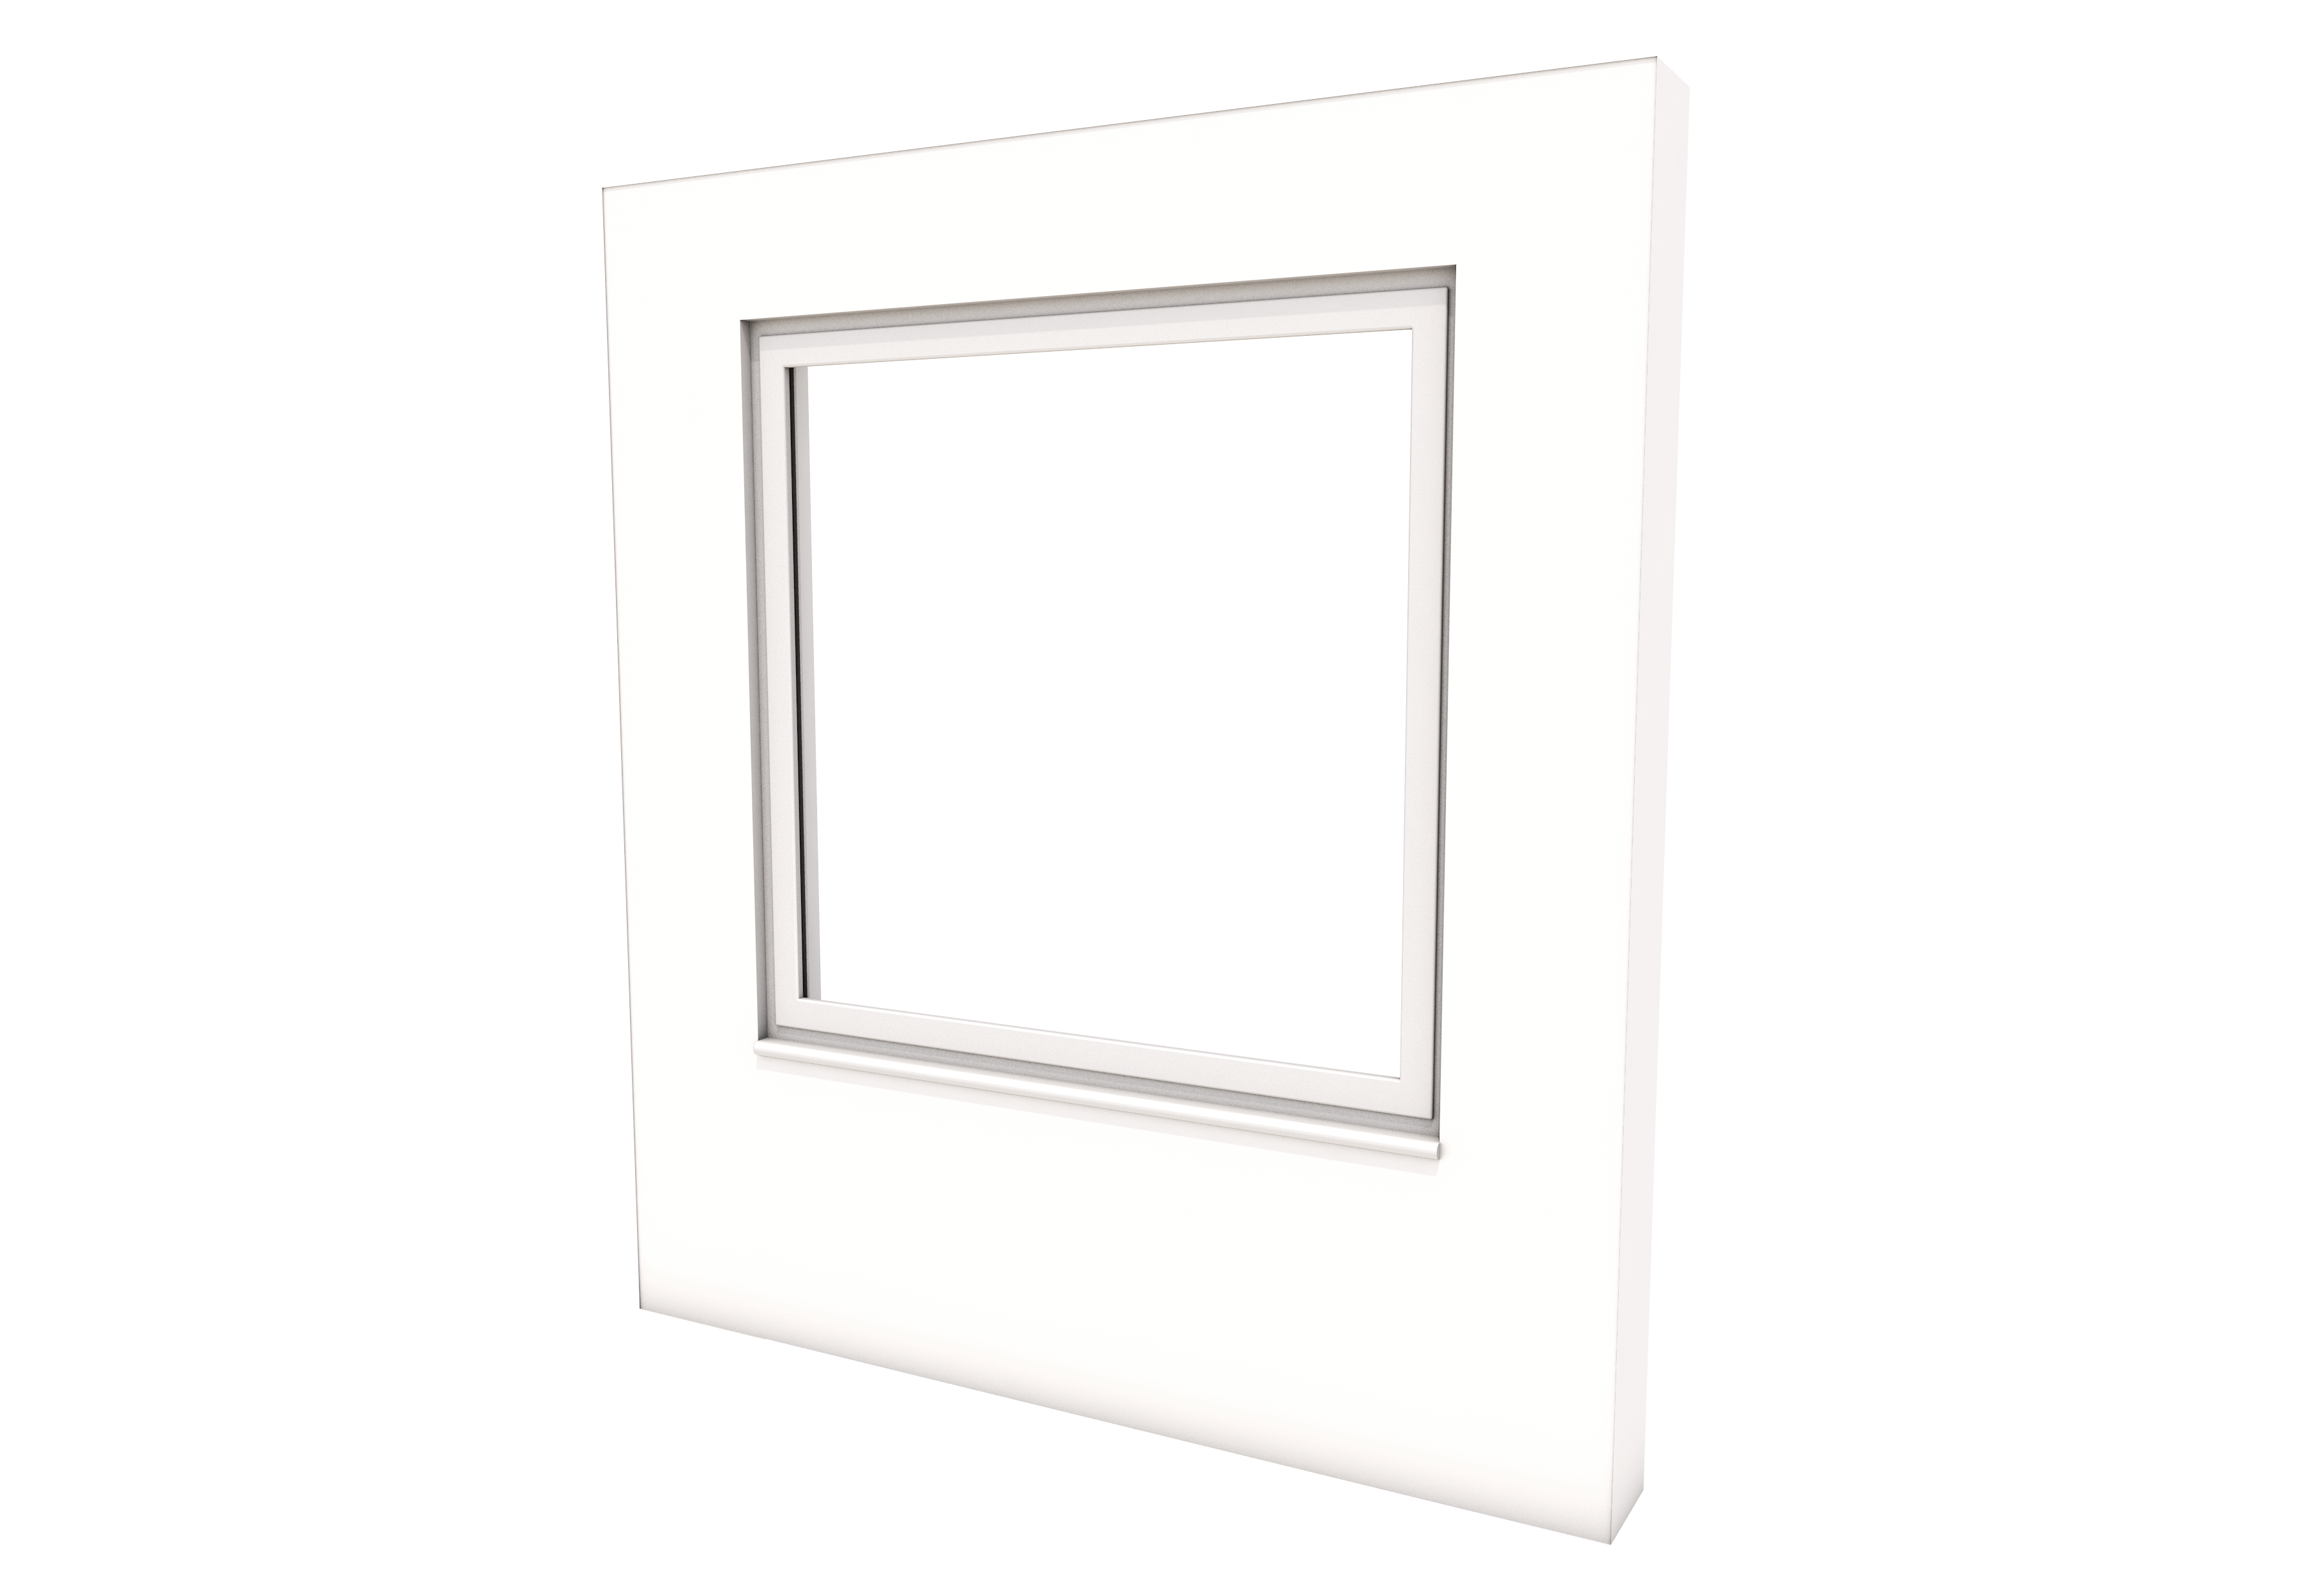 Smart Alitherm 300 Window - 600 x 1200 mm - Top Hinge